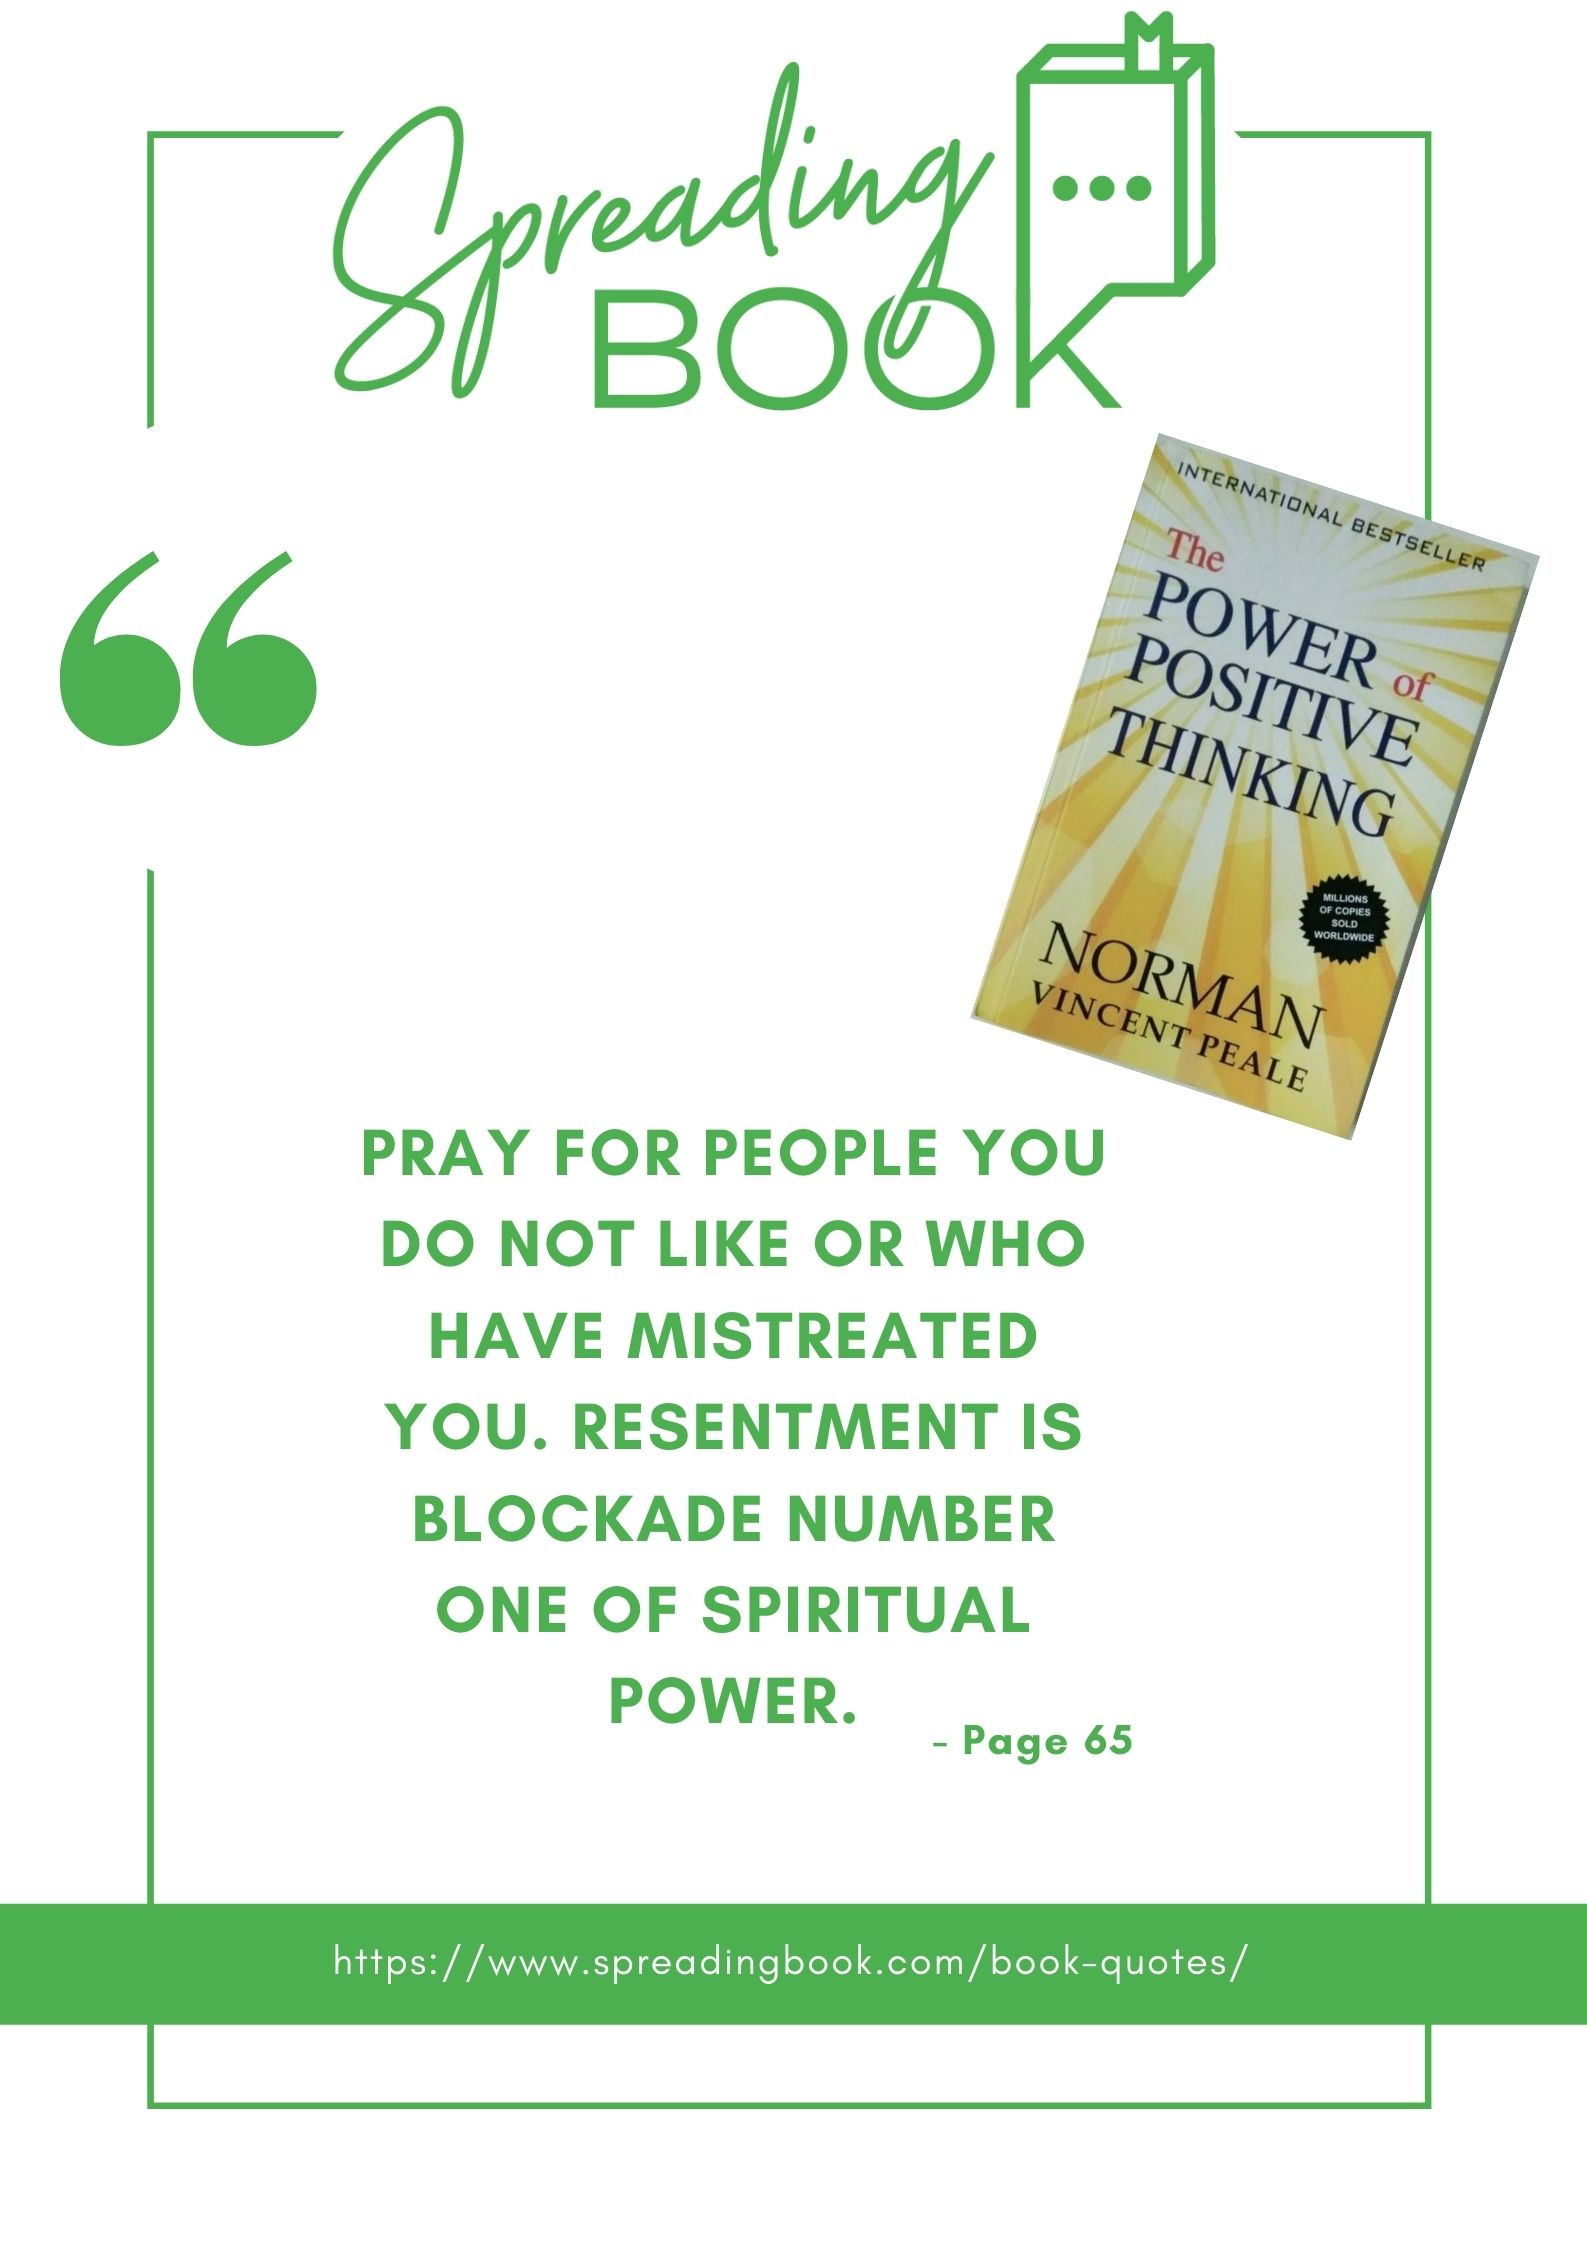 Pray for people you do not like or who have mistreated you. Resentment is blockade number one of spiritual power.